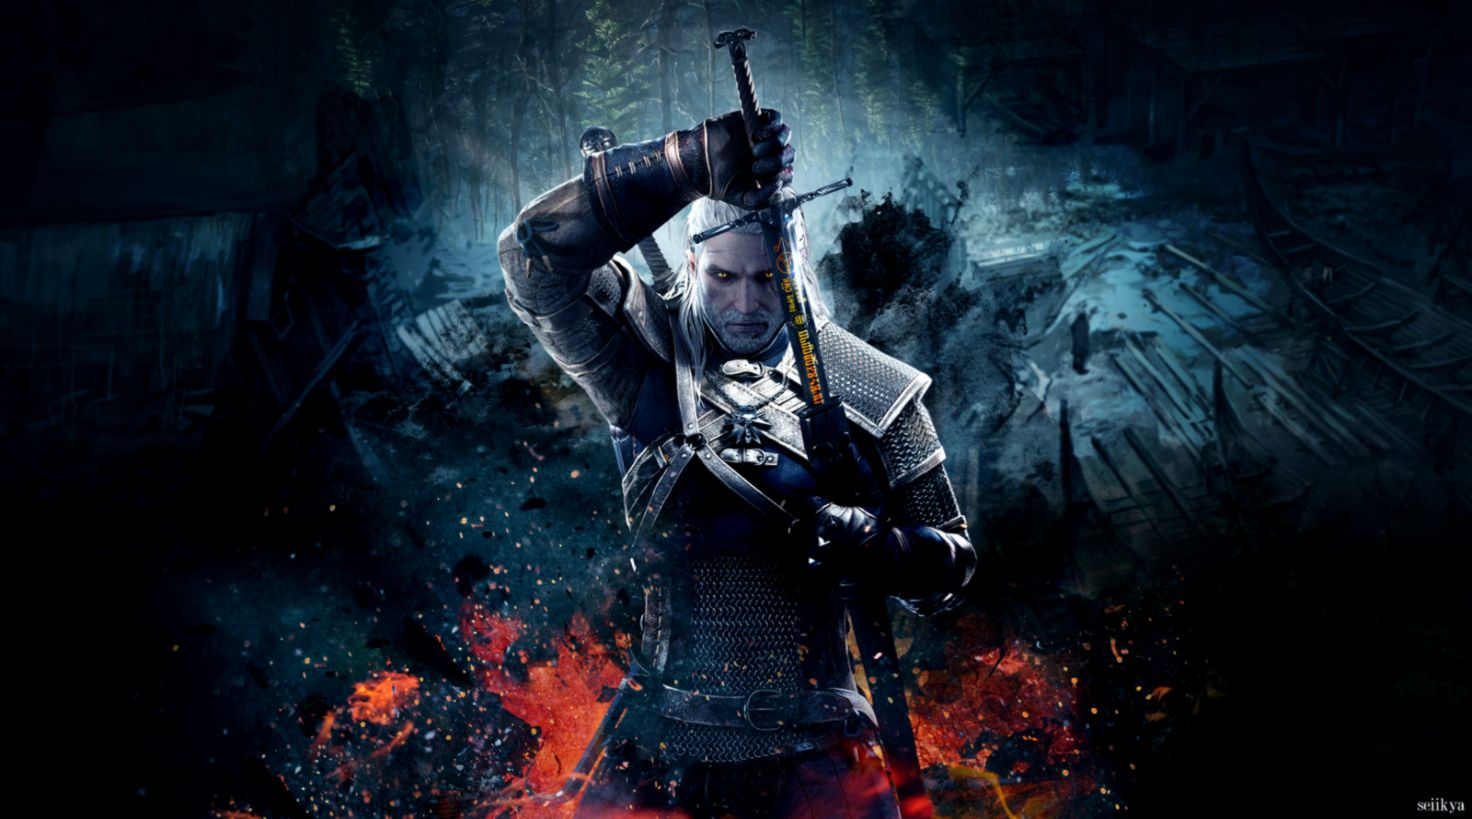 Witcher Wallpaper Posted By Zoey Peltier